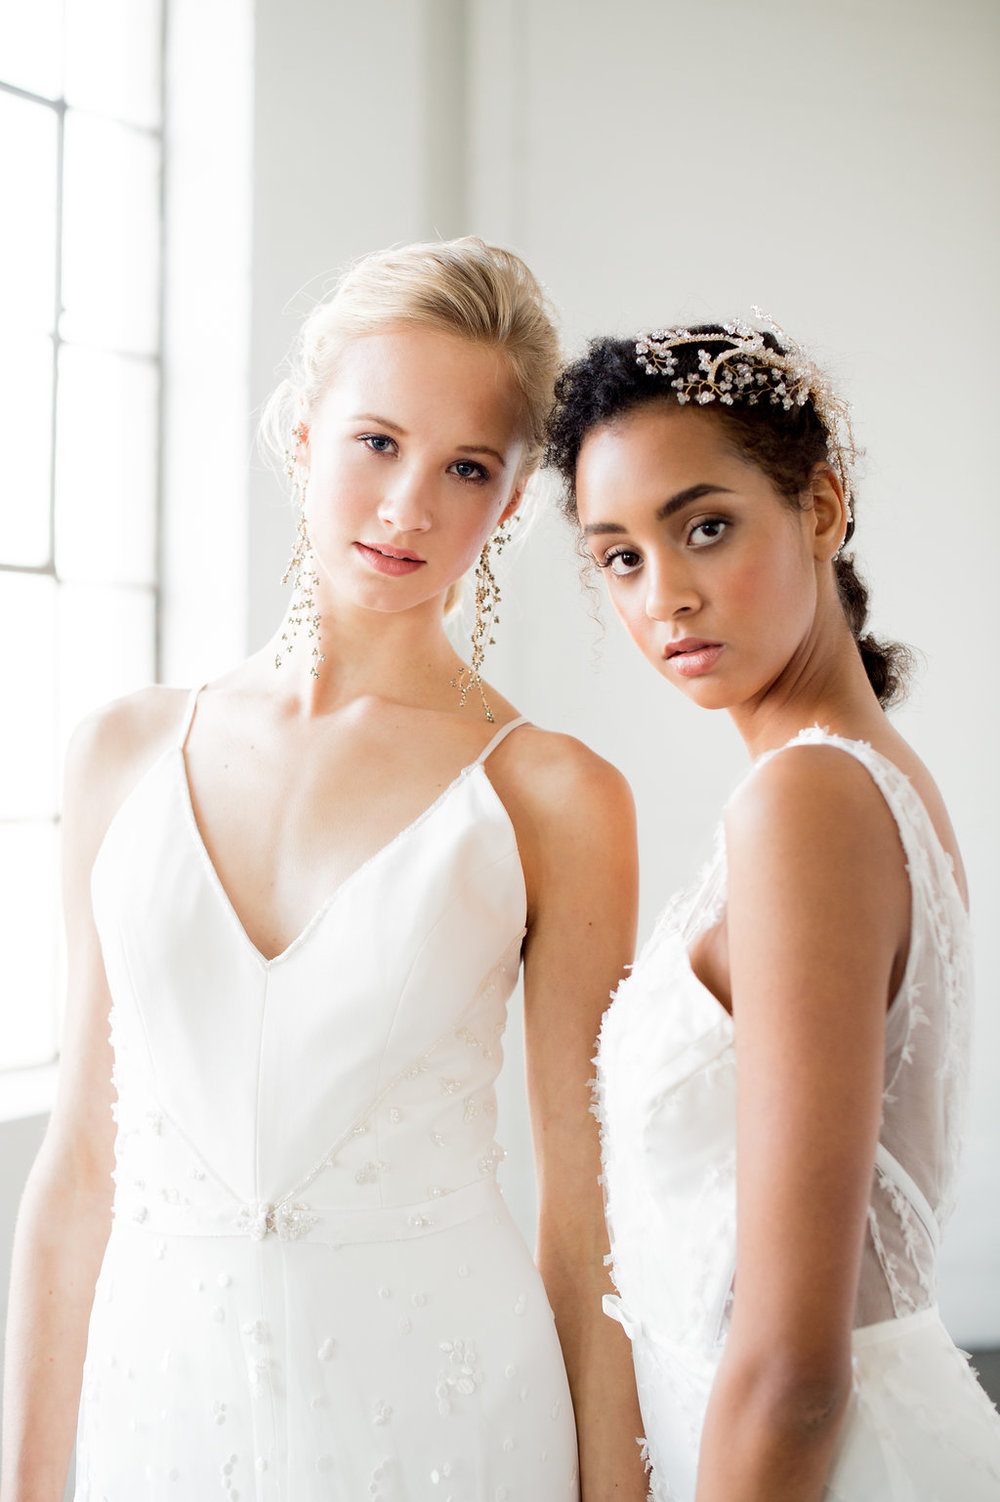 """FeAtured on the Want that Wedding blog, Catherine's Langlois' 2018 """"White Canvas"""" collection of couture wedding gowns. All photos by Whitney Heard. All makeup by Maya Goldenberg. All hair by Ladylyn Gool. Shot on location at Ikonica image studios, styling: The Loved One. Models: May (Plutino) and Eve (Chantale Nadeau)."""